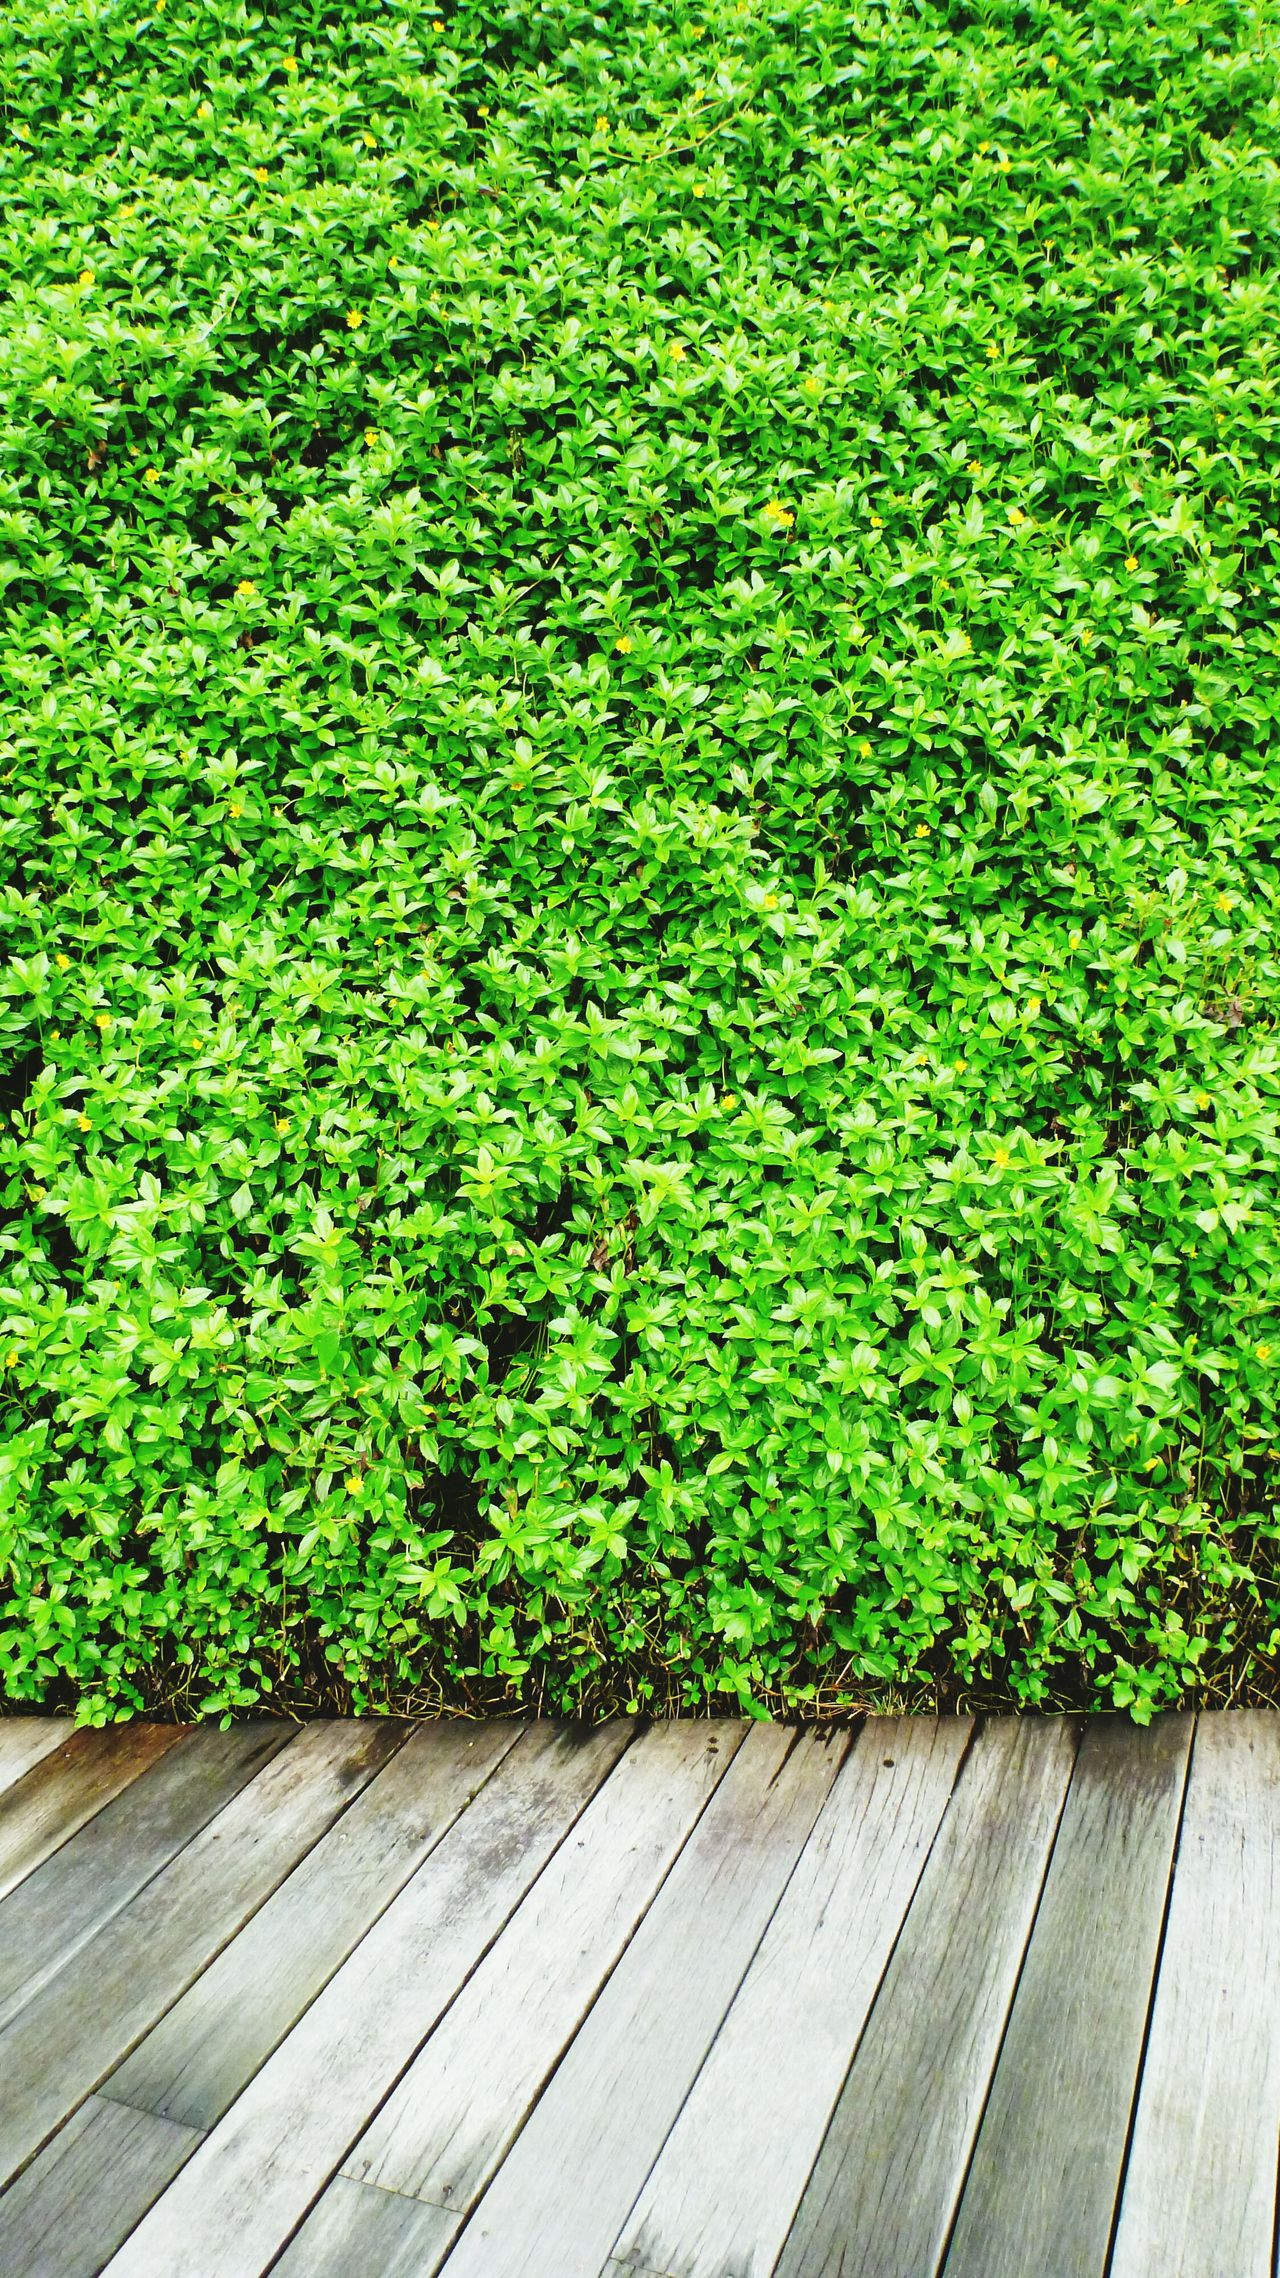 Green Wall Freshness Greenery Protecting Where We Play EyeEm Nature Lover EyeEm Gallery Textures And Surfaces EyeEm Best Shots Getting Inspired Taking Photos